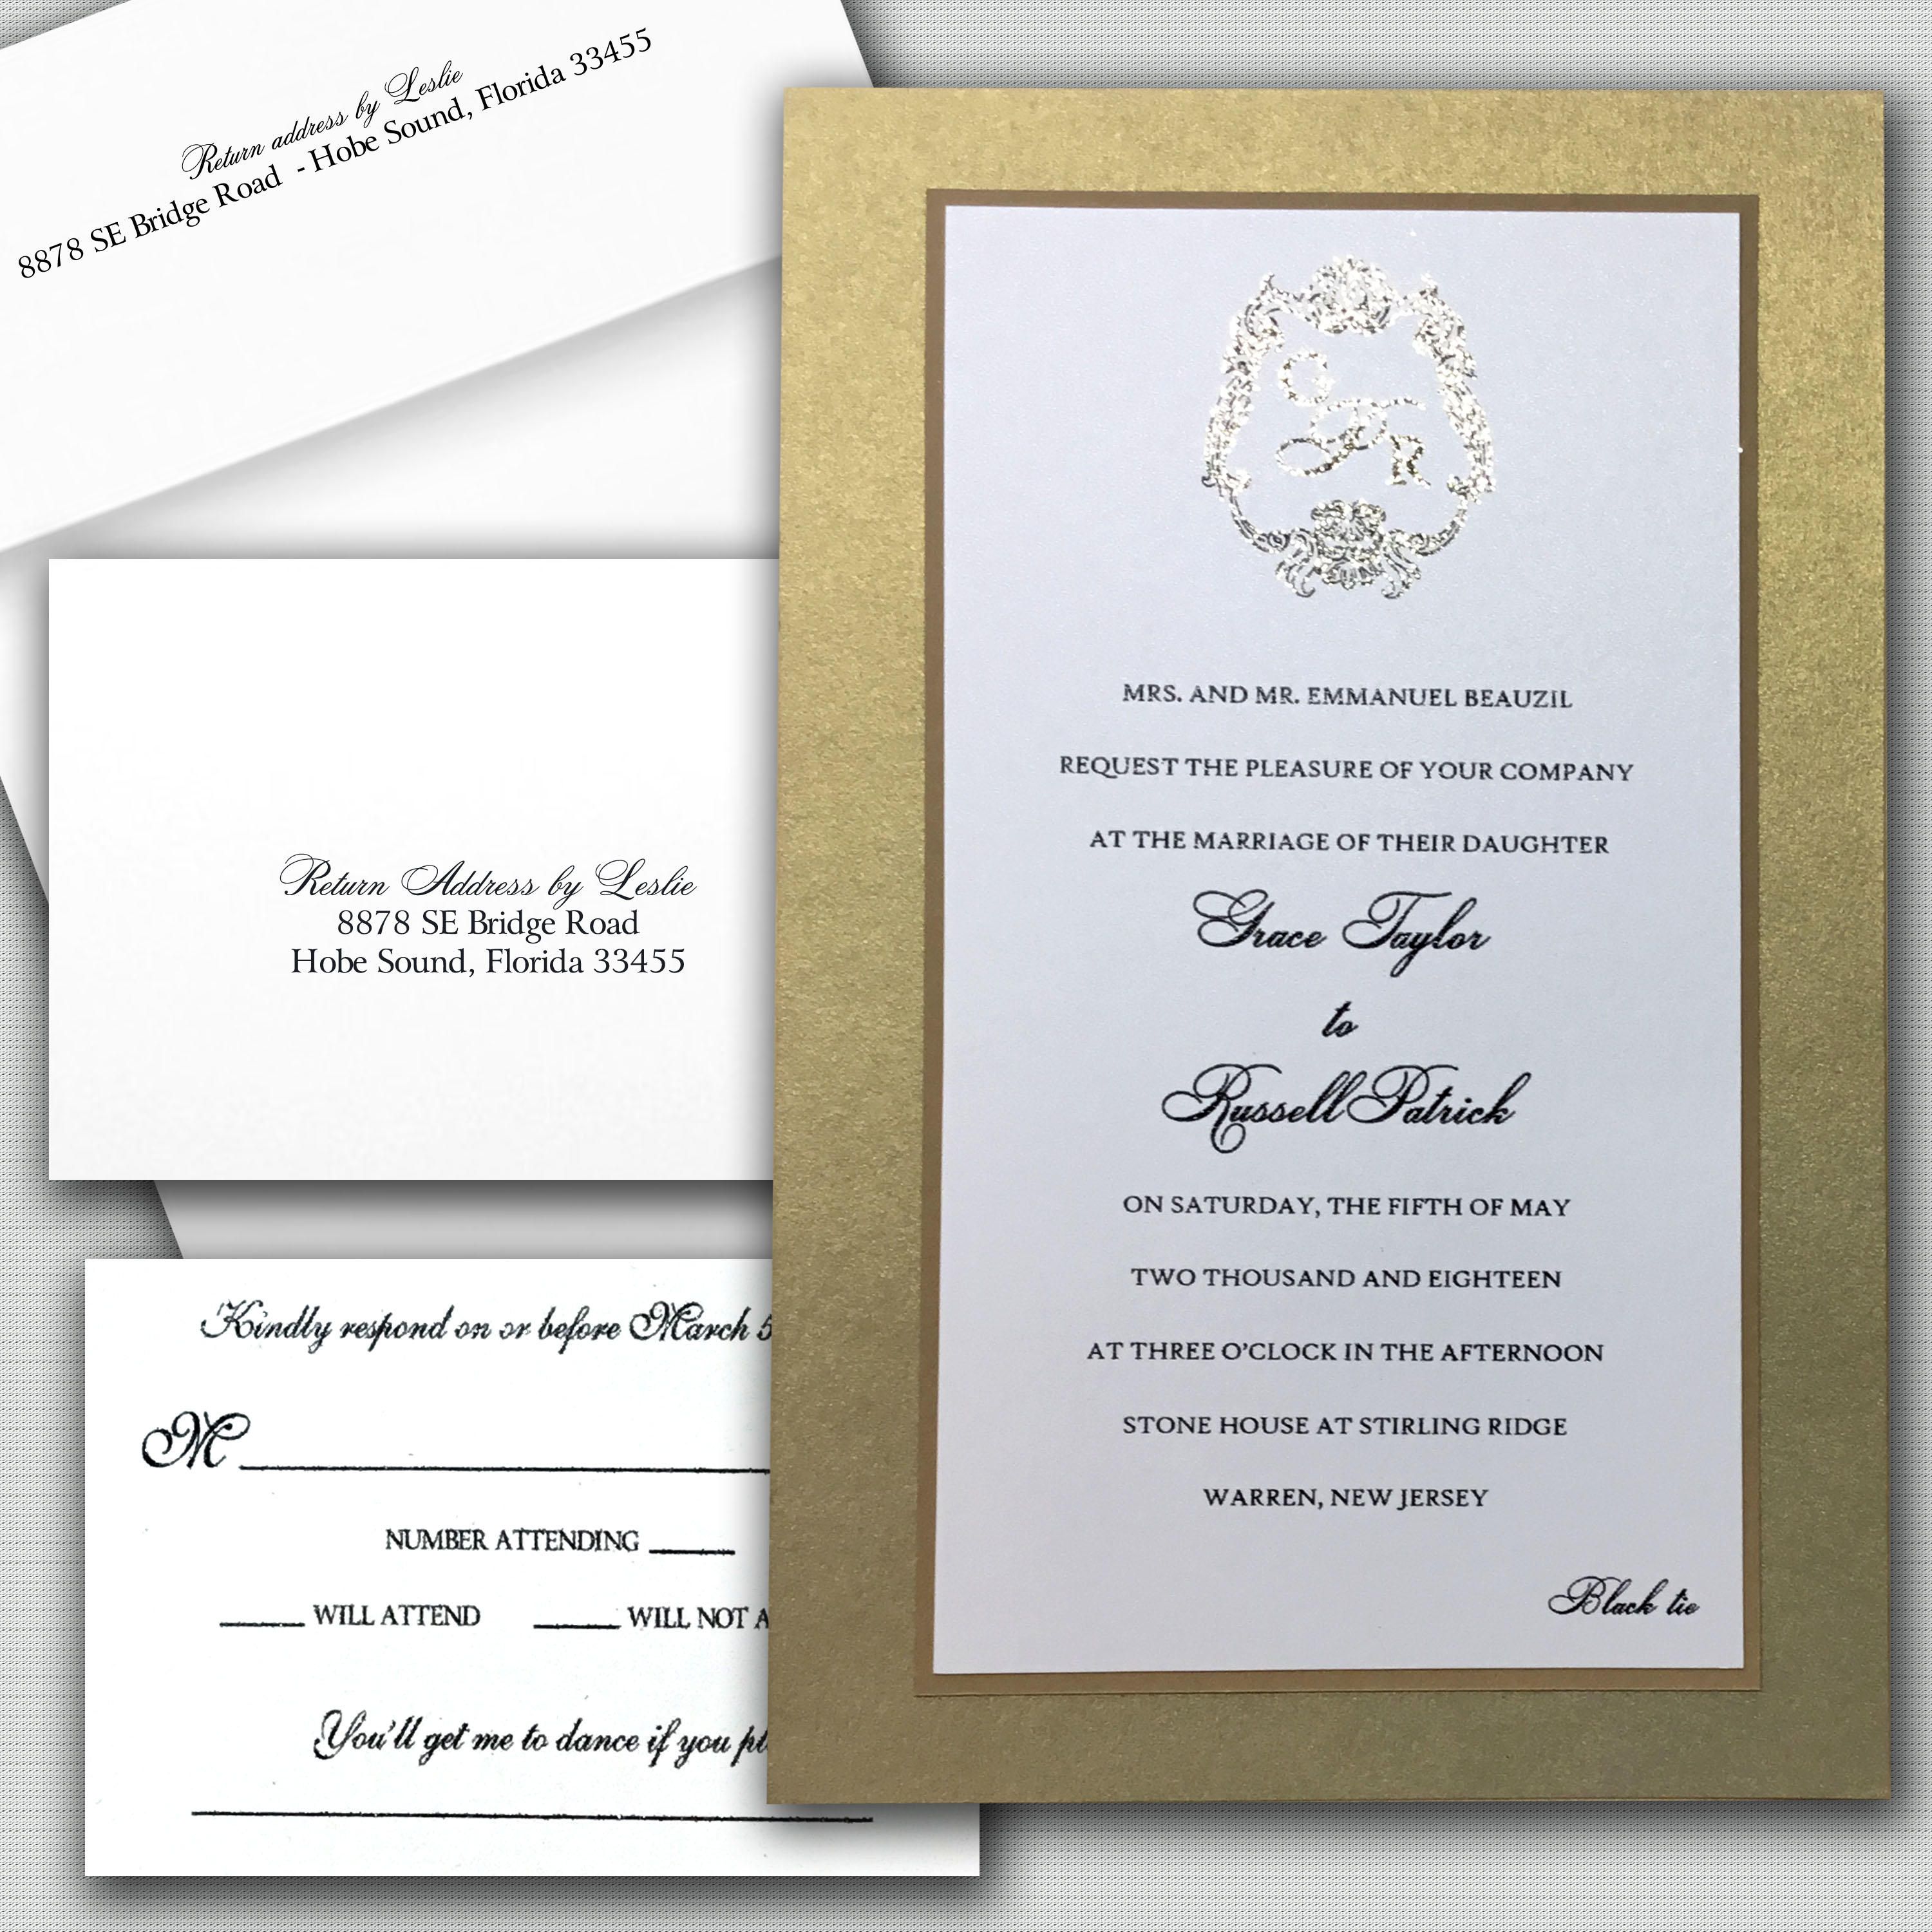 Leslie Store Wedding Invitations & Stationery image 10